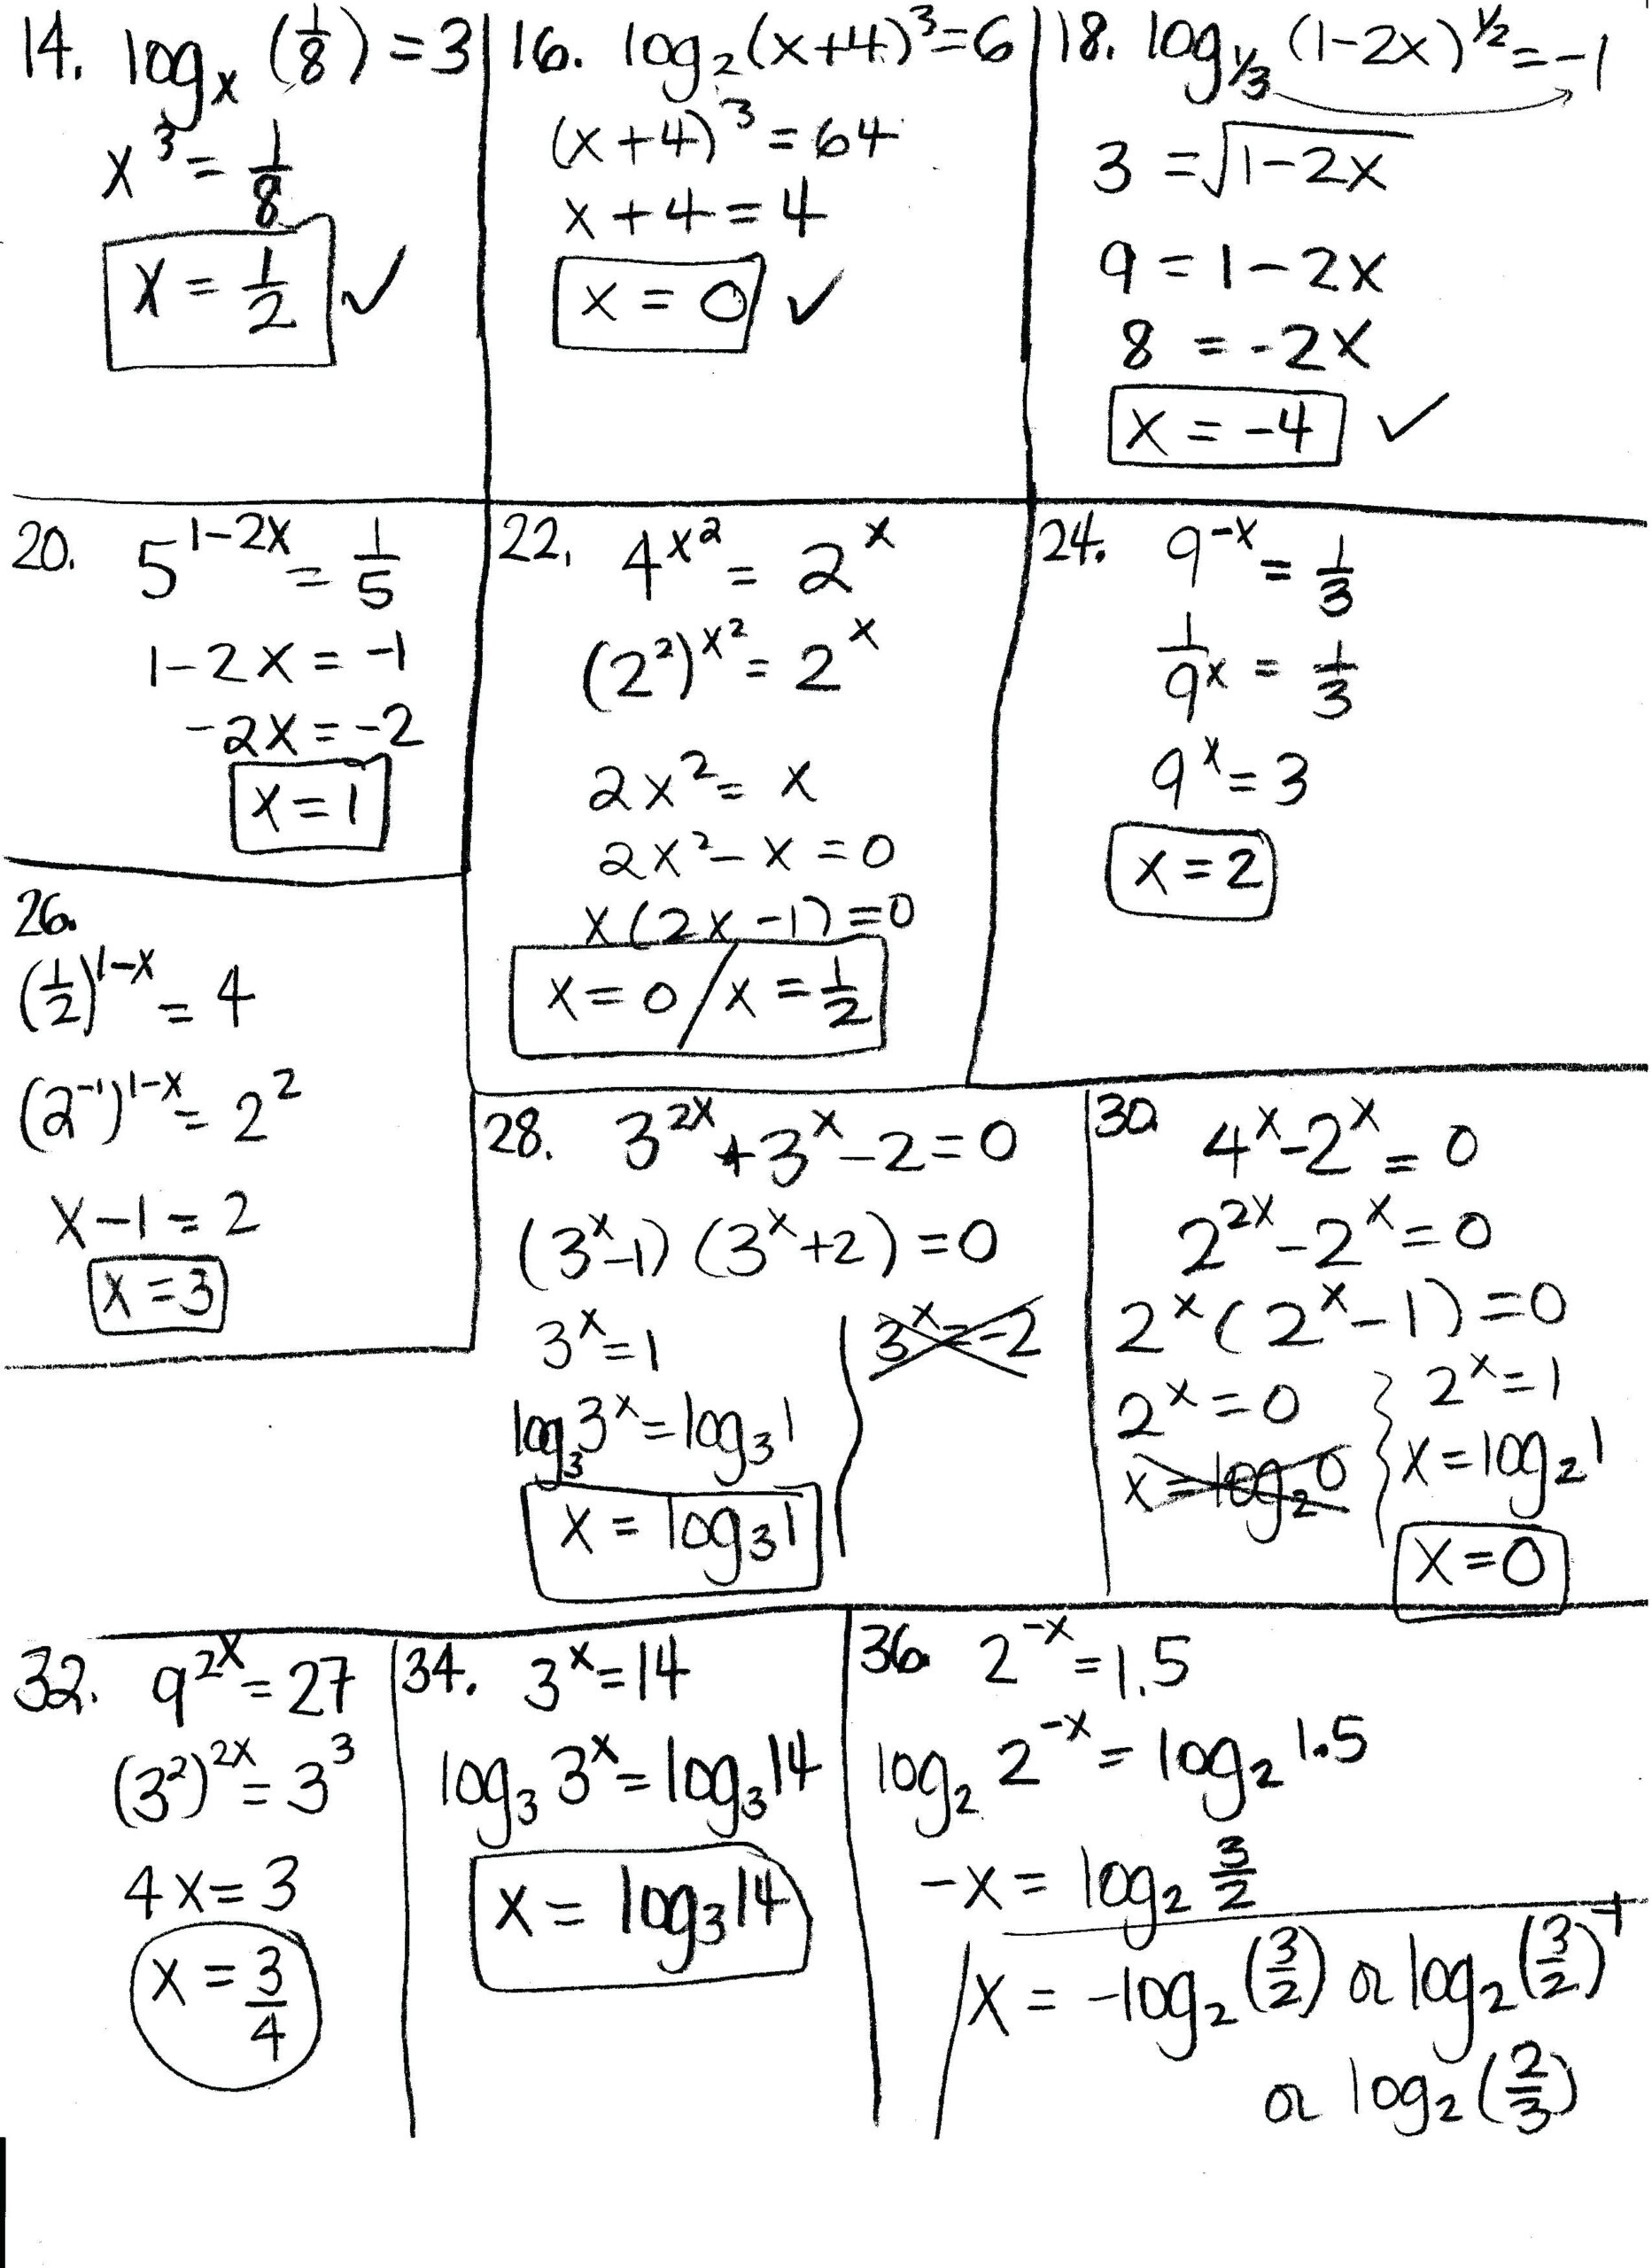 Worksheet On Solving Exponential And Logarithmic Functions